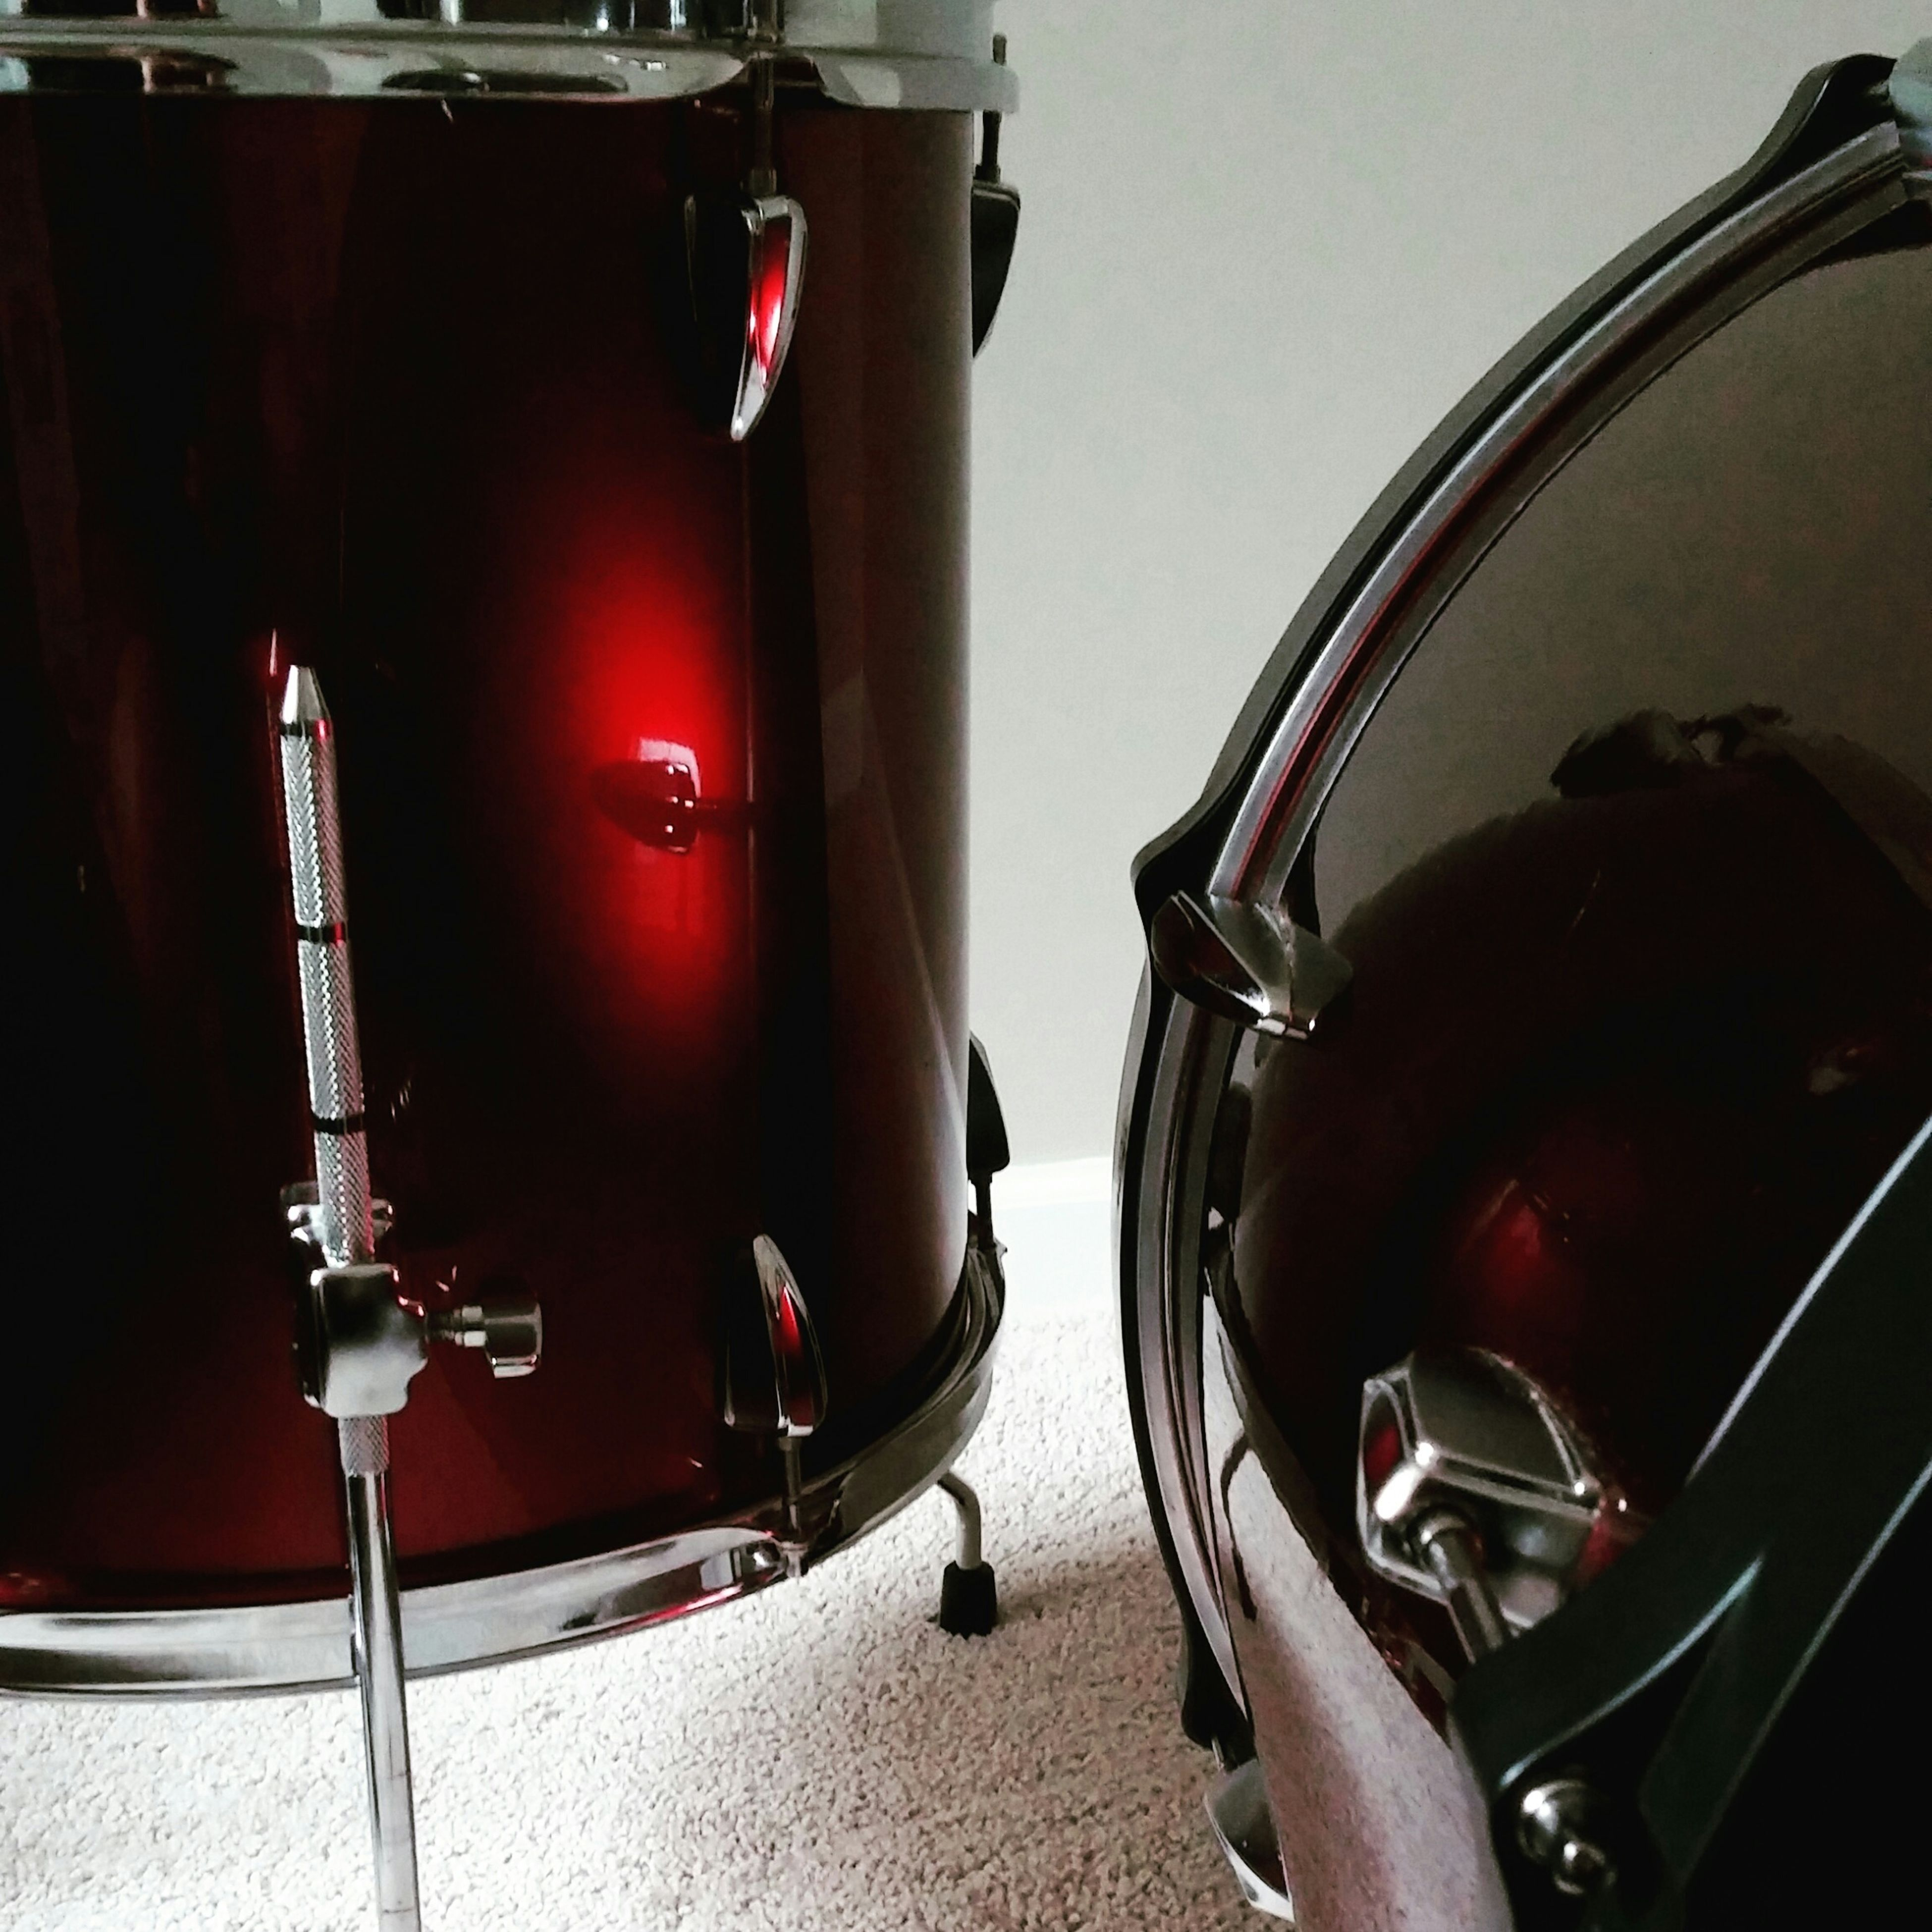 Ruby Radiance. Redrum Photo Finish To Drum Snapseed